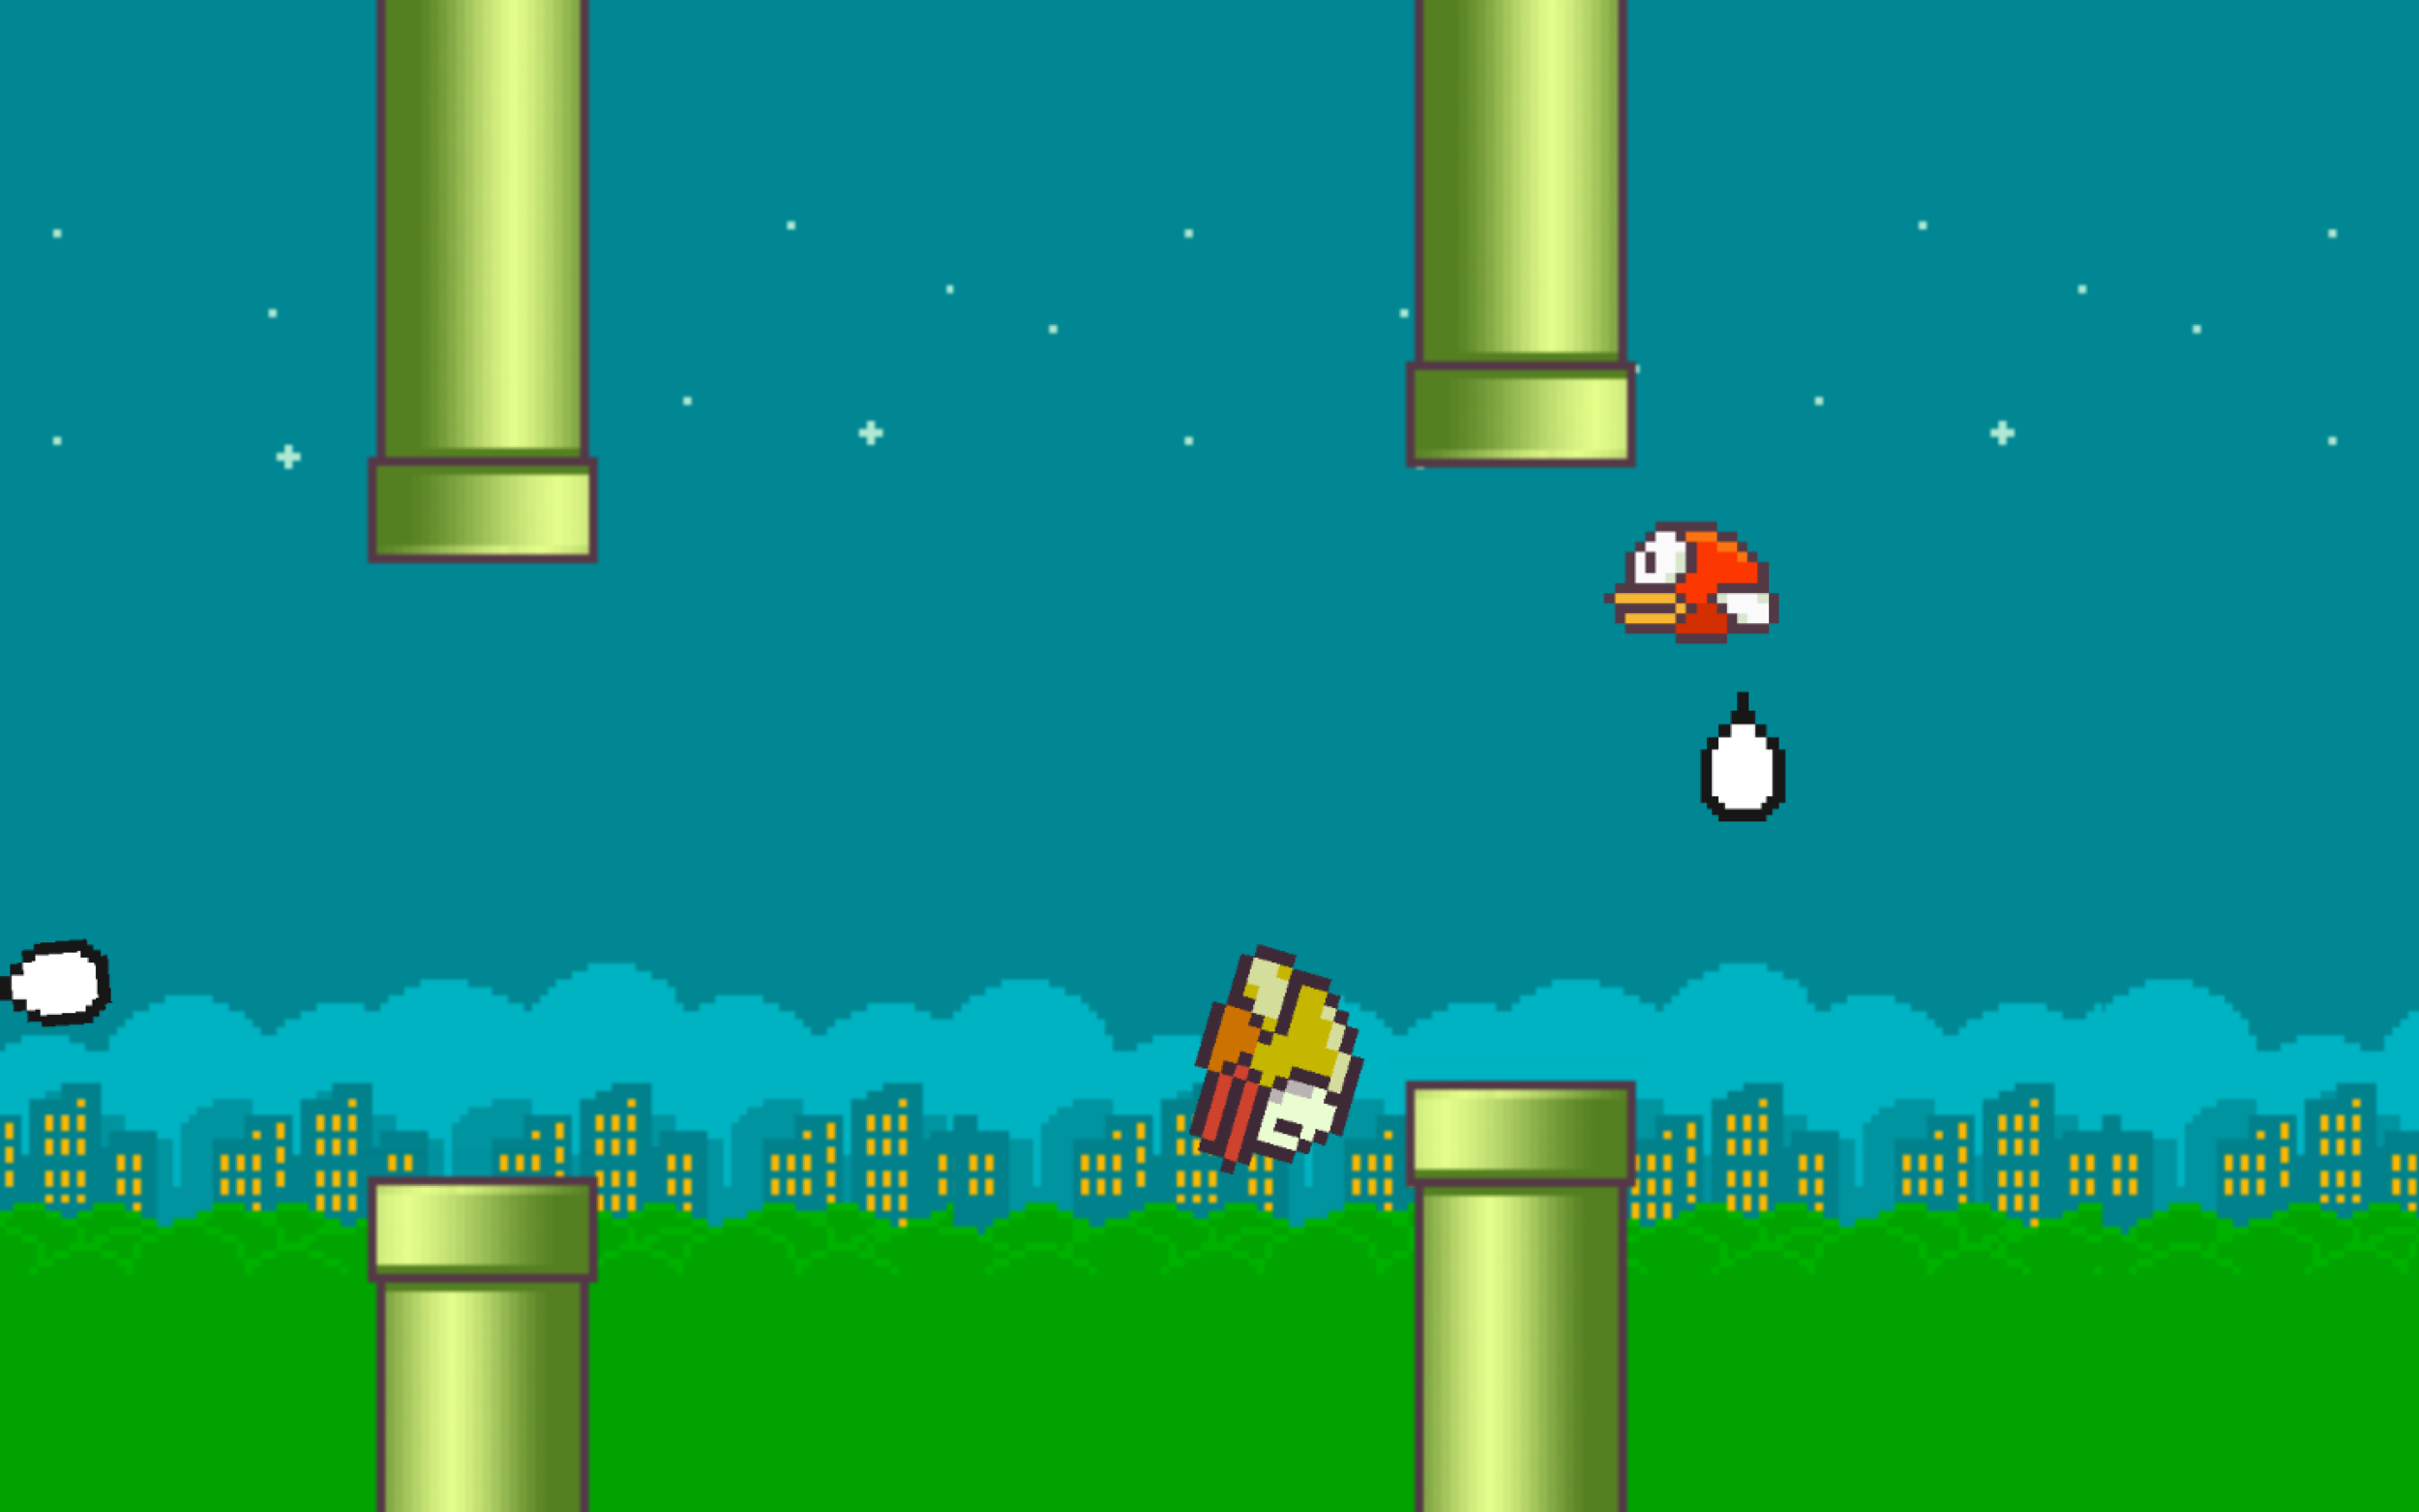 flappy_bird.png